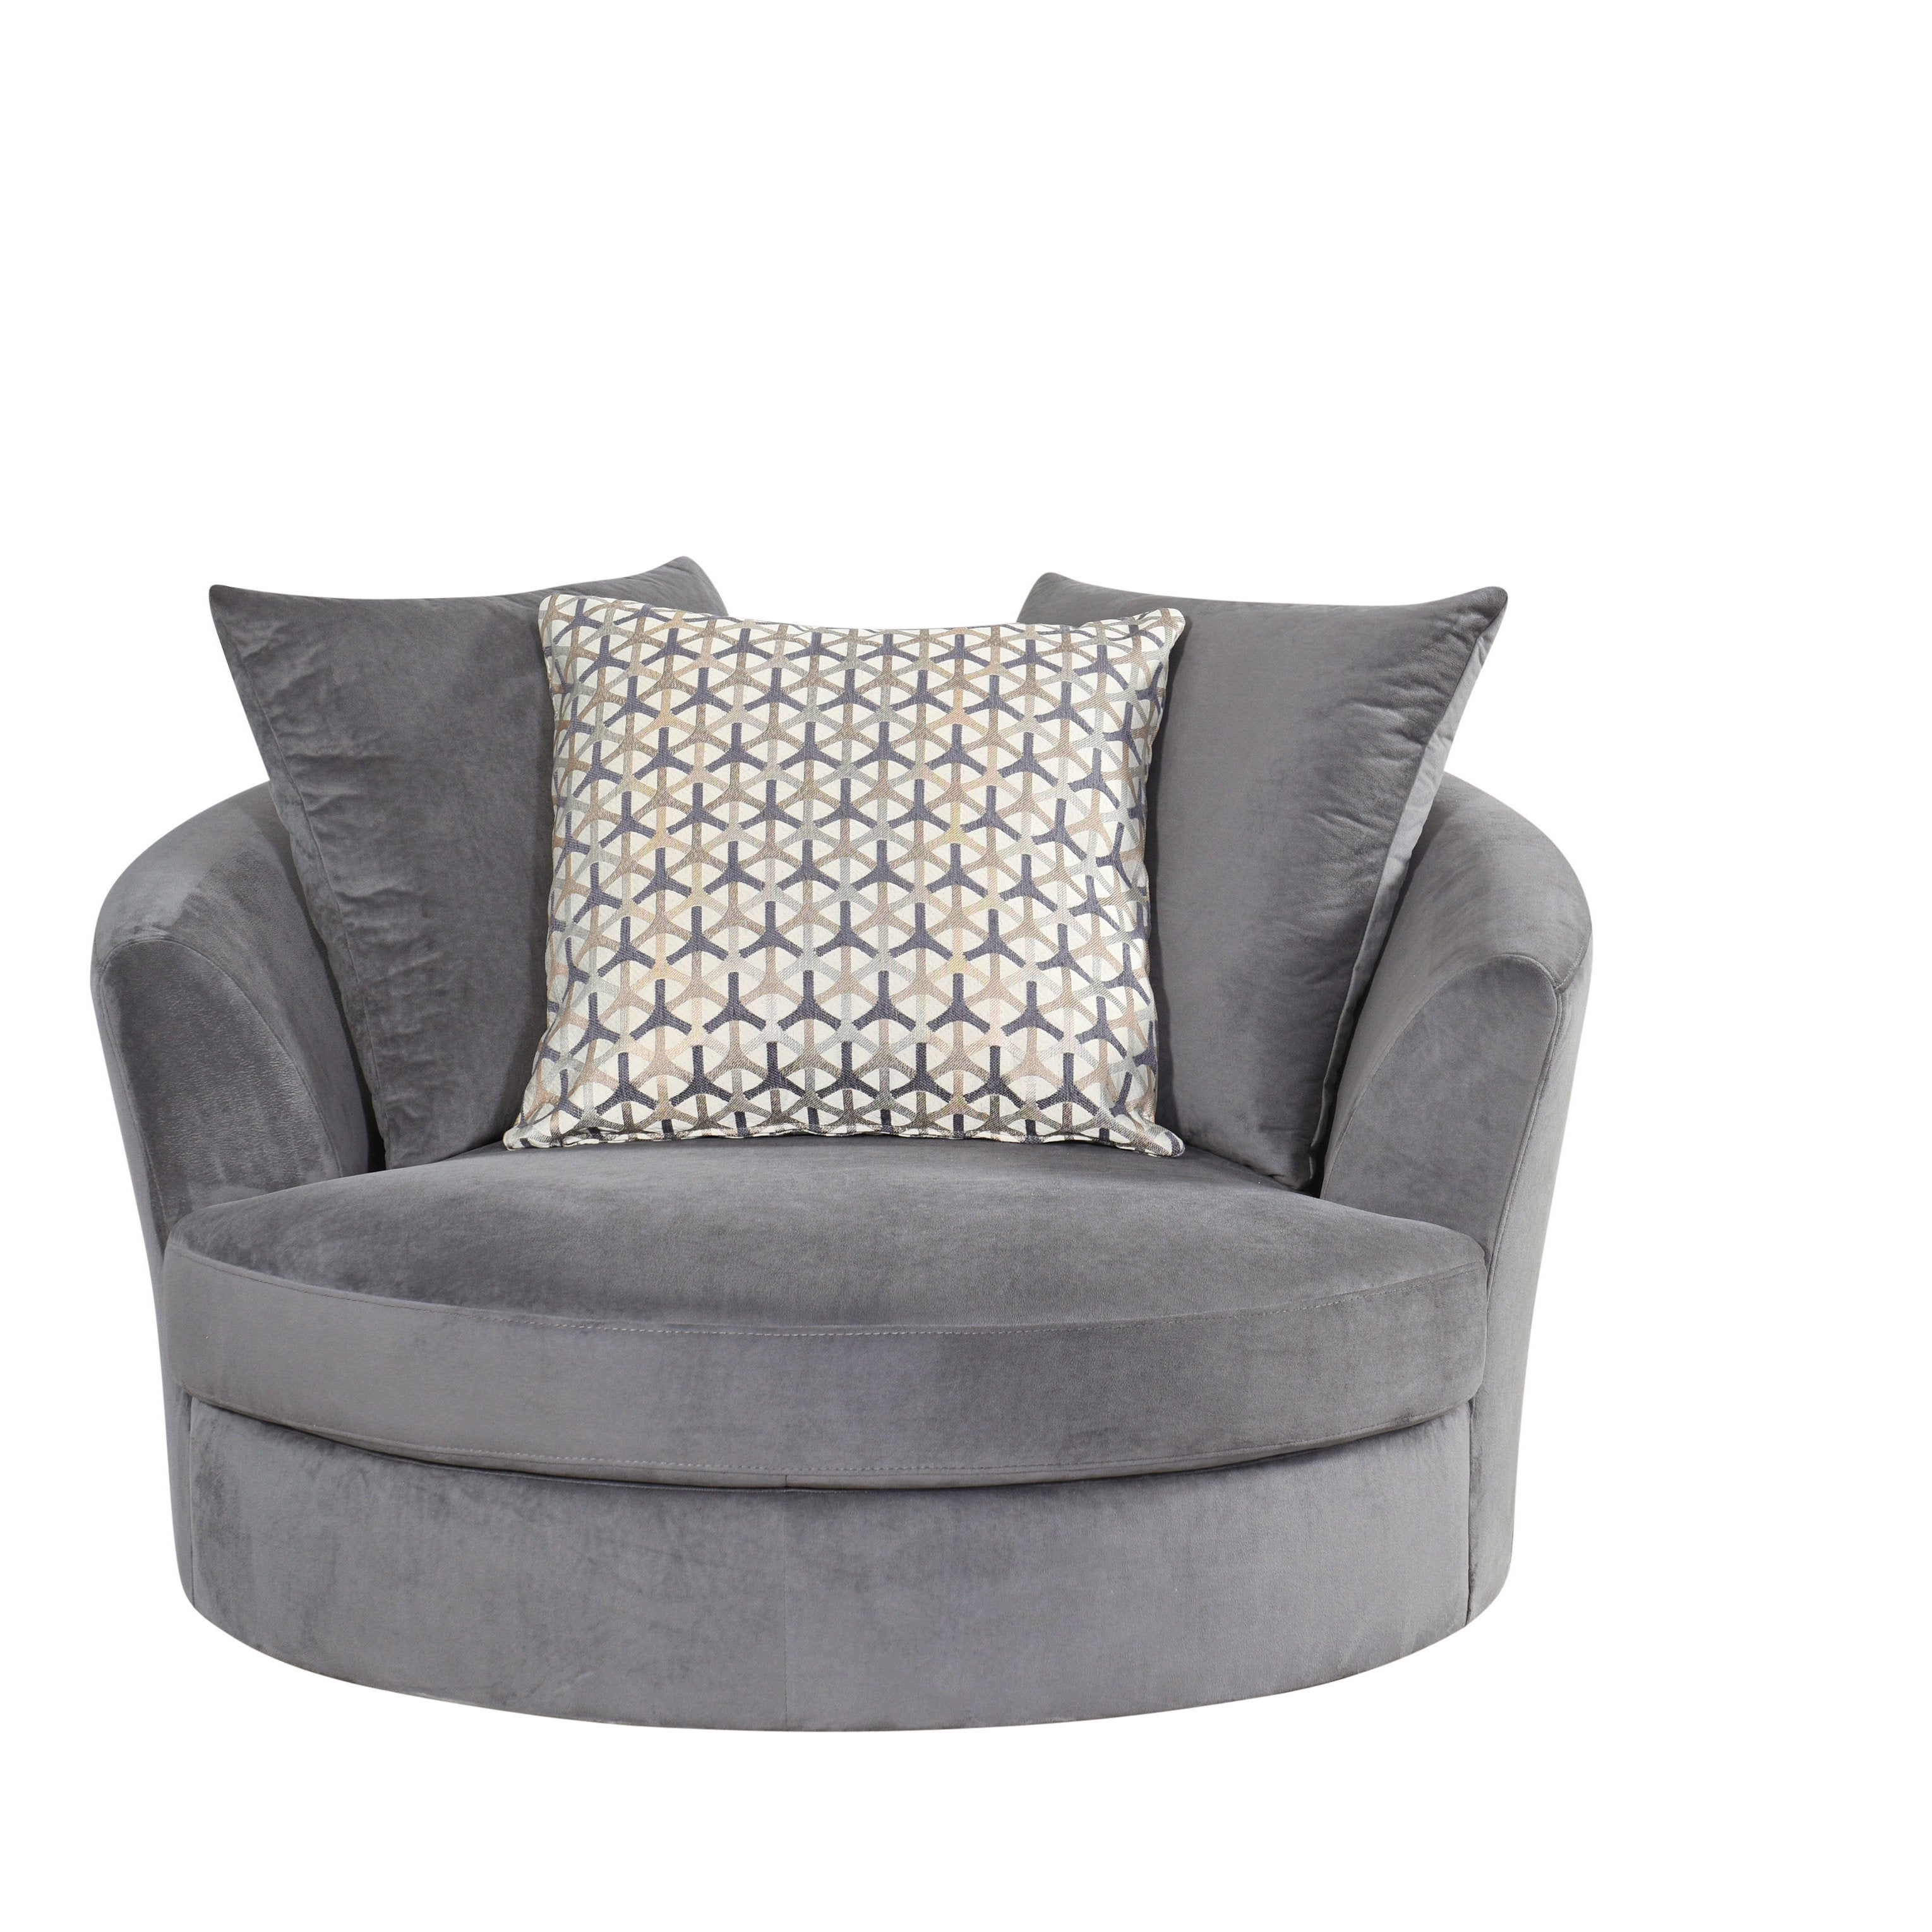 Delicieux Shop Abbyson Tanya Grey Fabric Round Swivel Chair   Free Shipping Today    Overstock.com   14466098